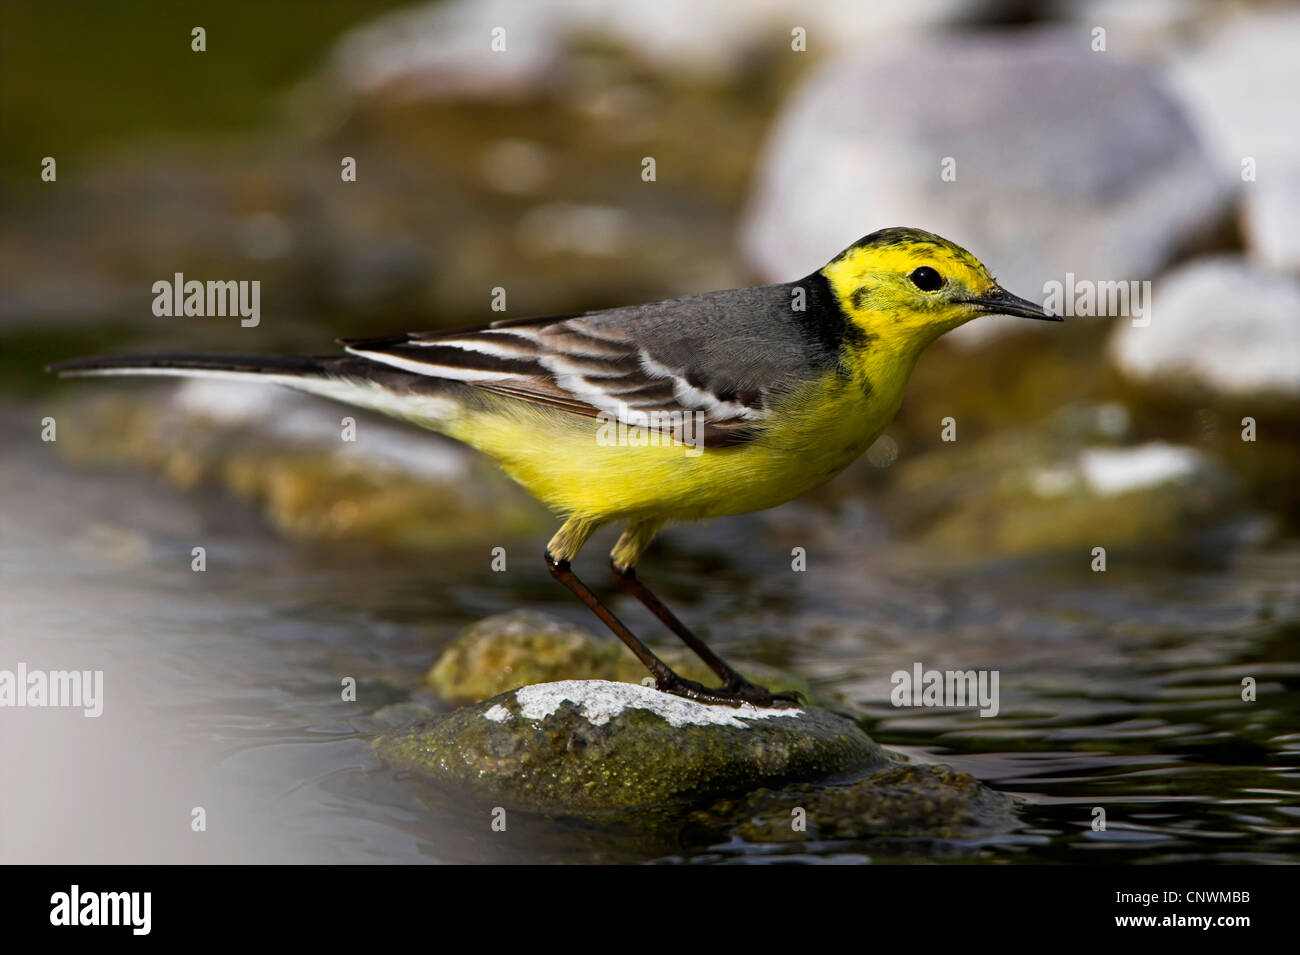 citrine wagtail (Motacilla citreola), standing in a brook on a stone, Greece, Lesbos - Stock Image